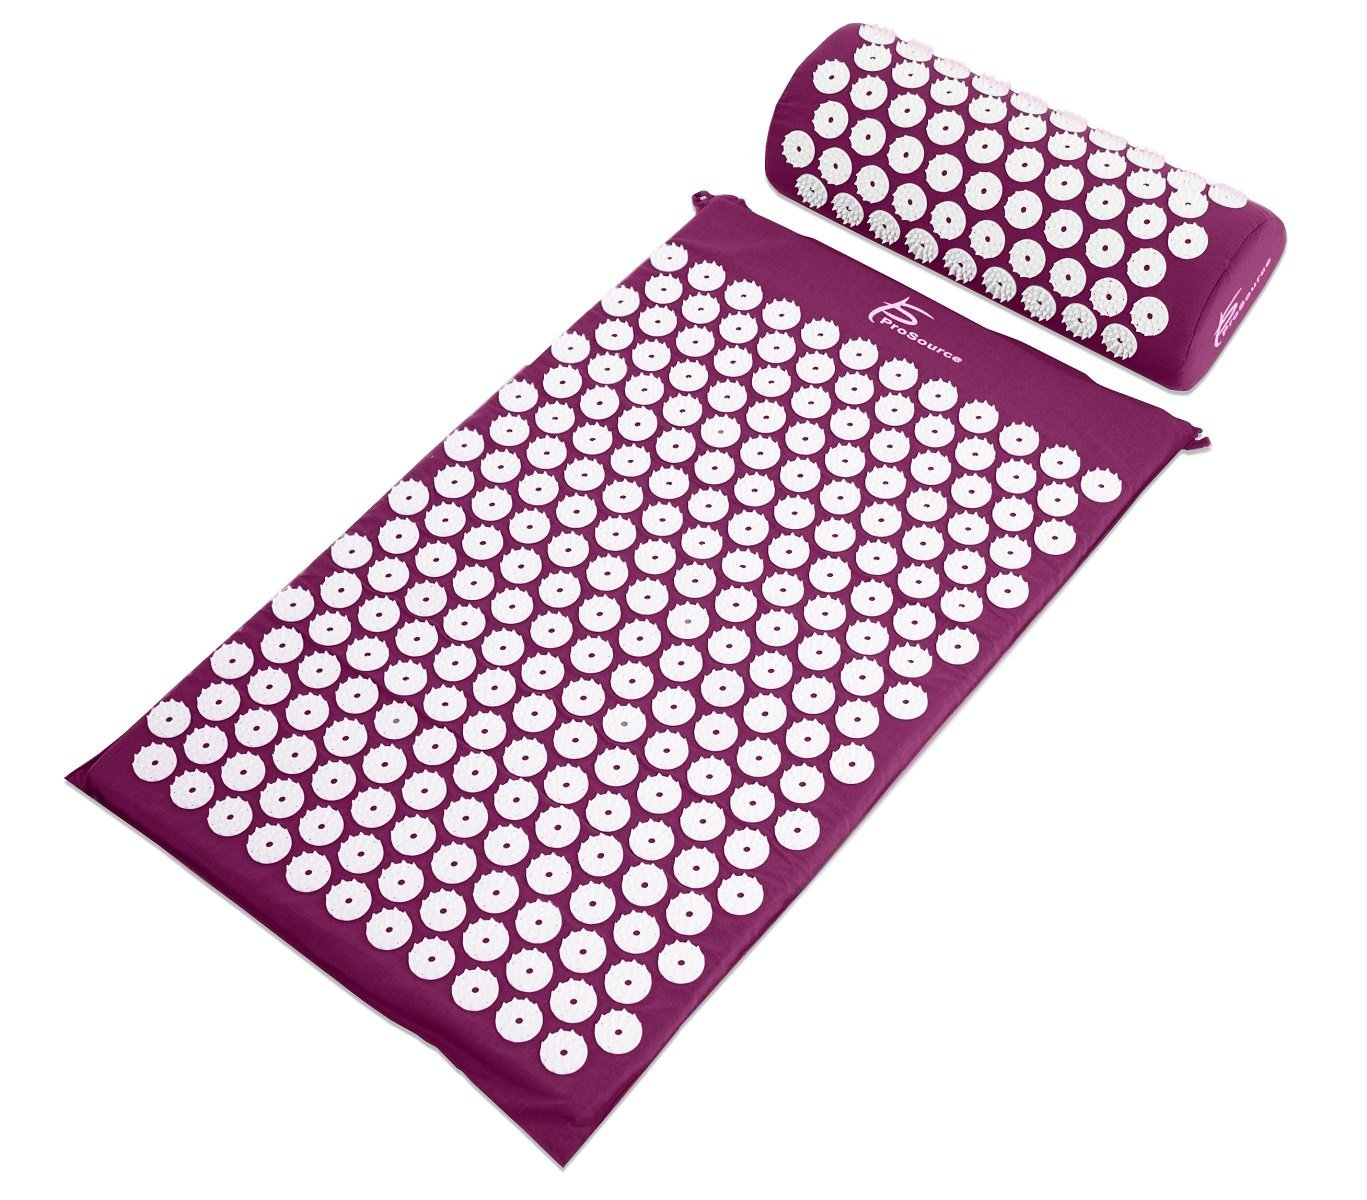 ergonomic chair lower back support banquet covers ireland do acupuncture / acupressure mats work for pain relief? | ergonomics fix